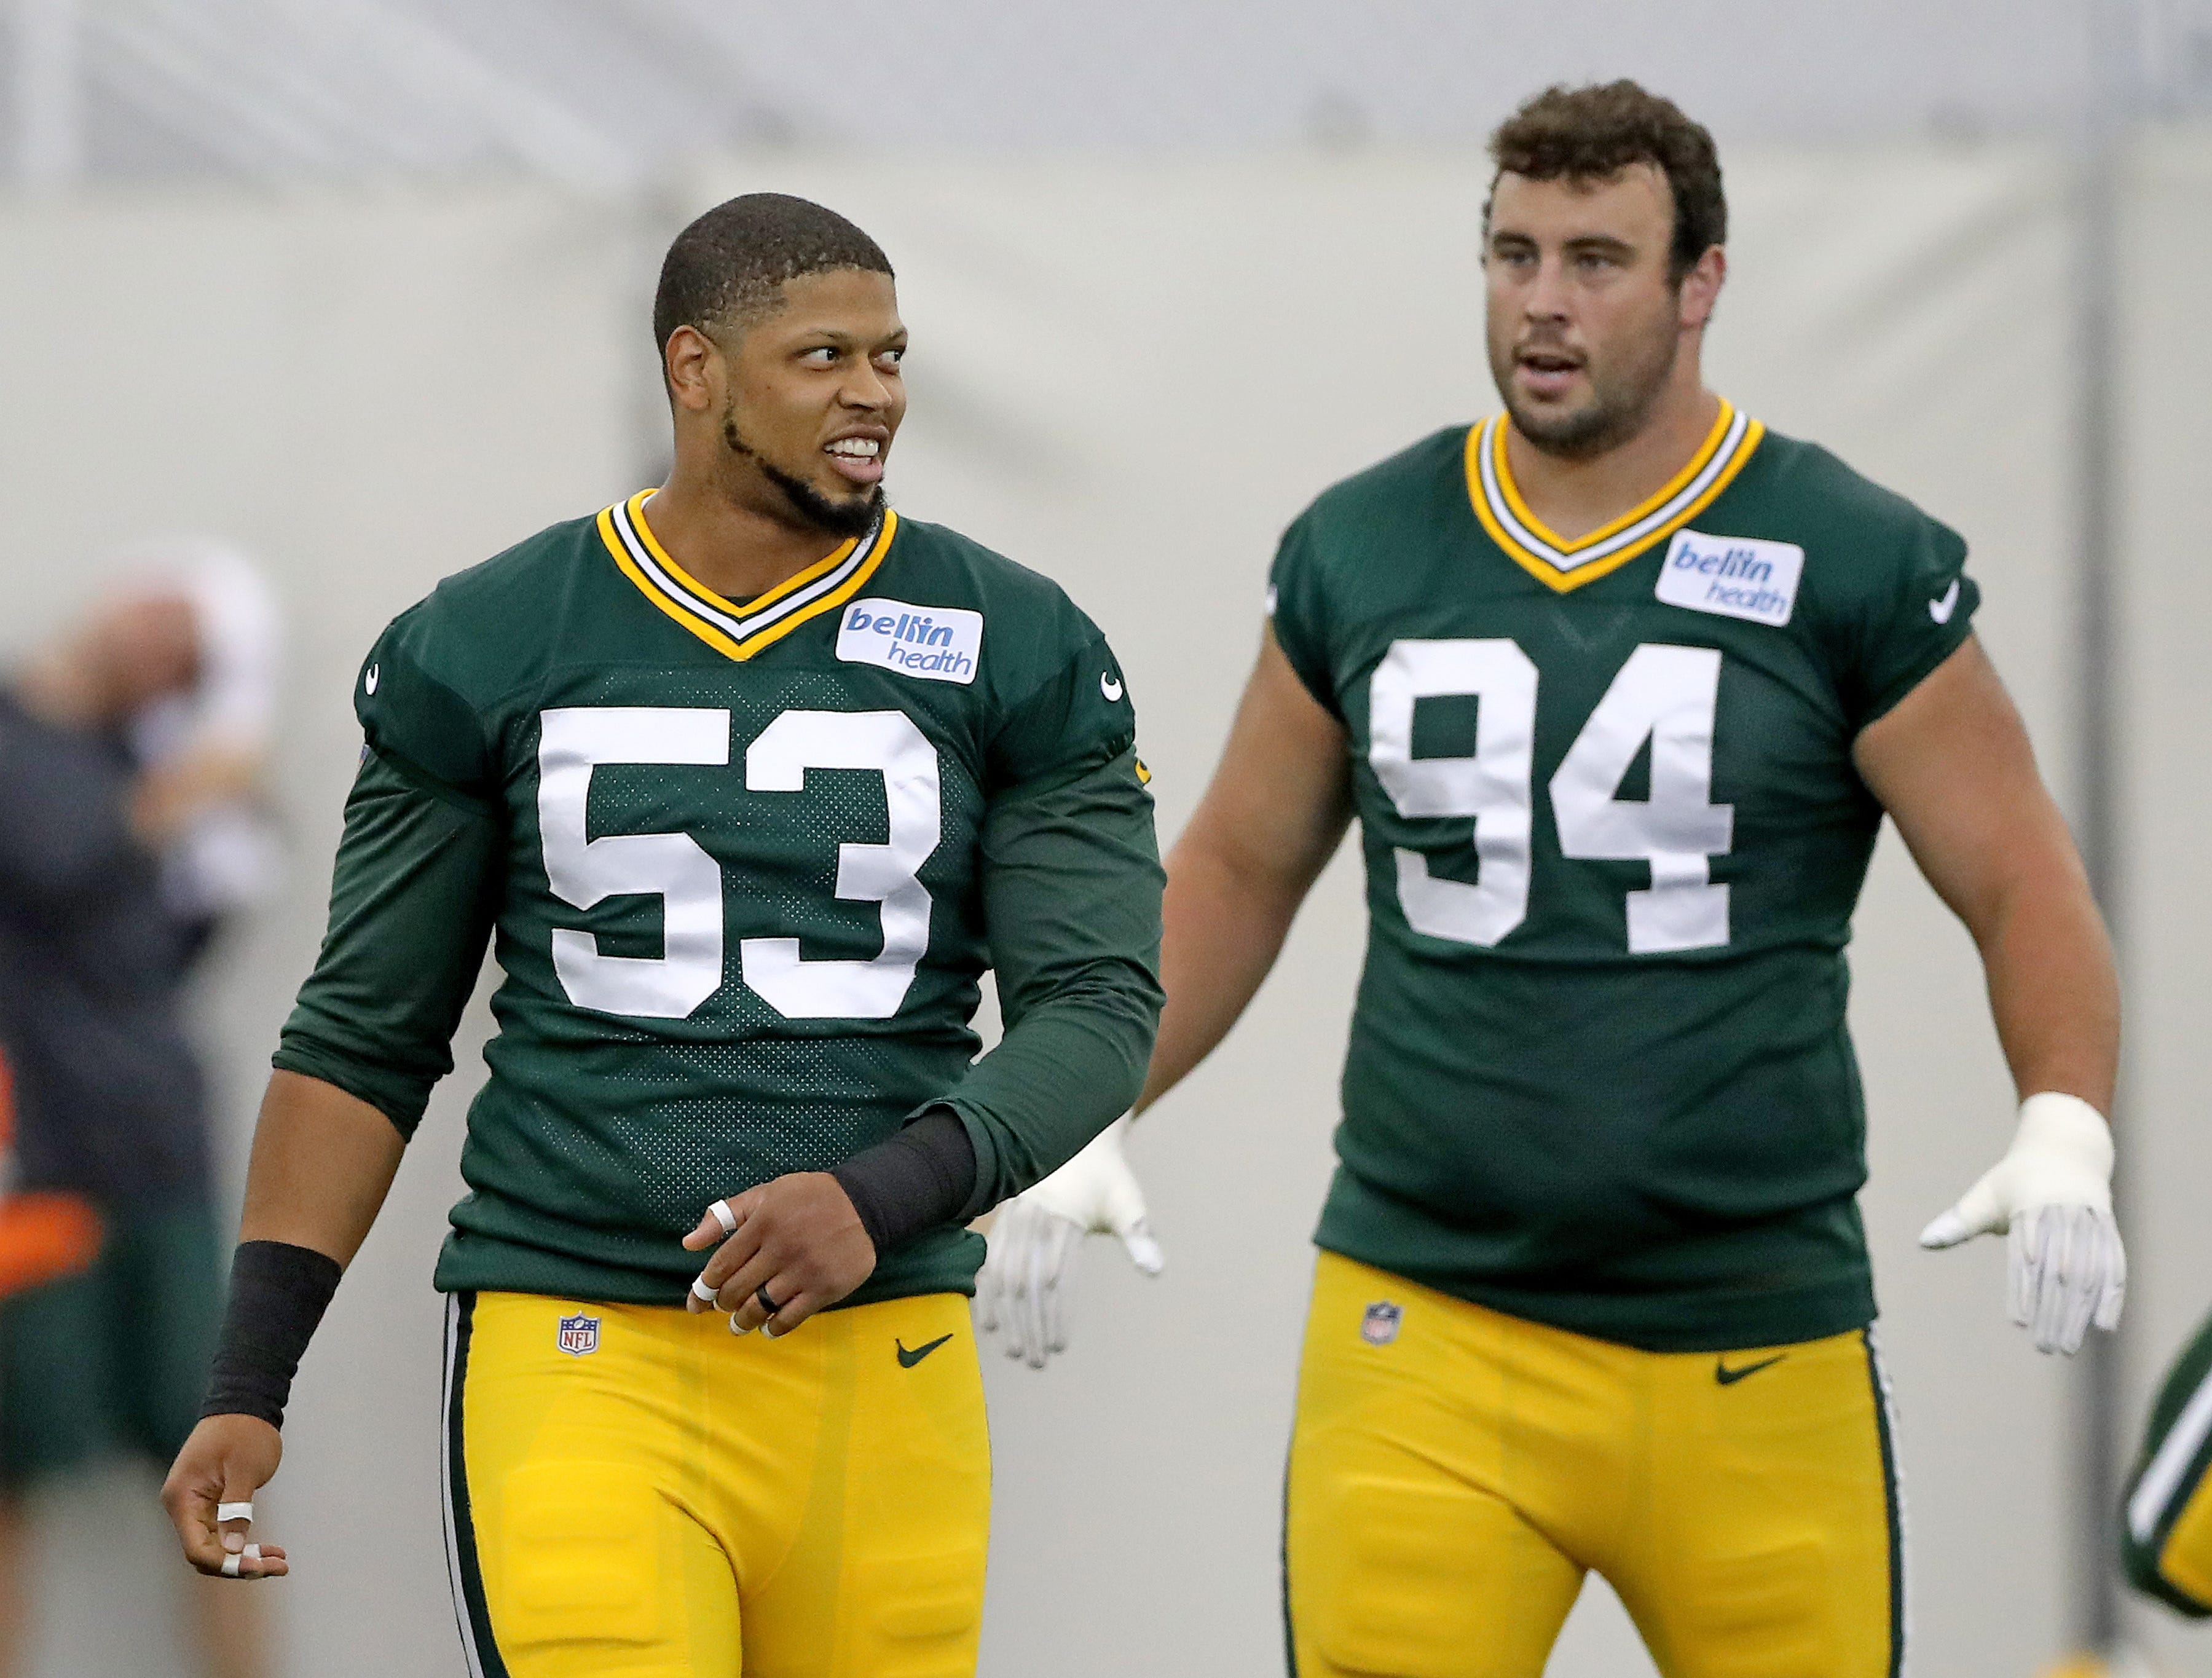 Green Bay Packers linebacker Nick Perry (53), defensive end Dean Lowry (94)during Packers practice in the Don Hutson Center Monday, September 3, 2018 in Ashwaubenon, Wis